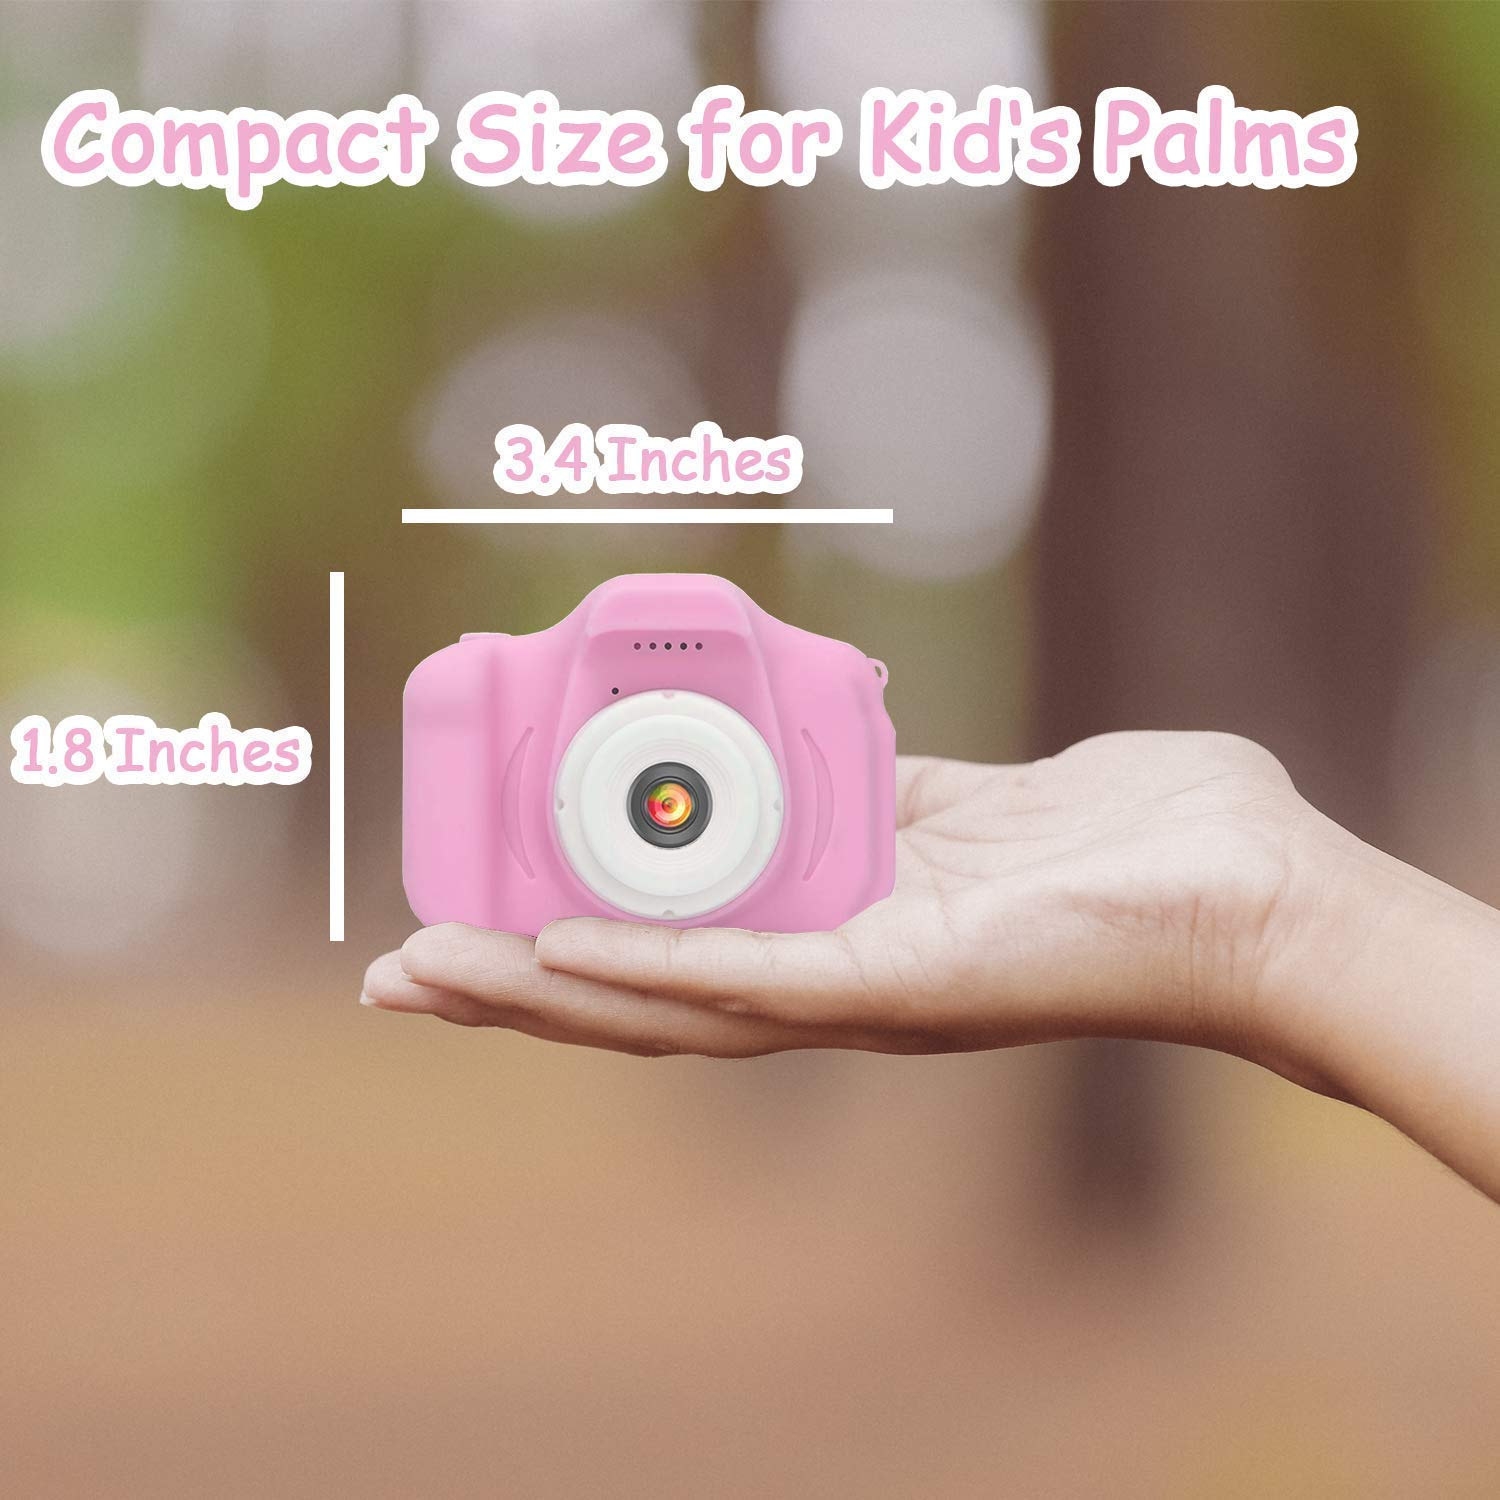 Review of Hachi's Choice Gift Kids Camera Toys for 3-9 Year Old Girls